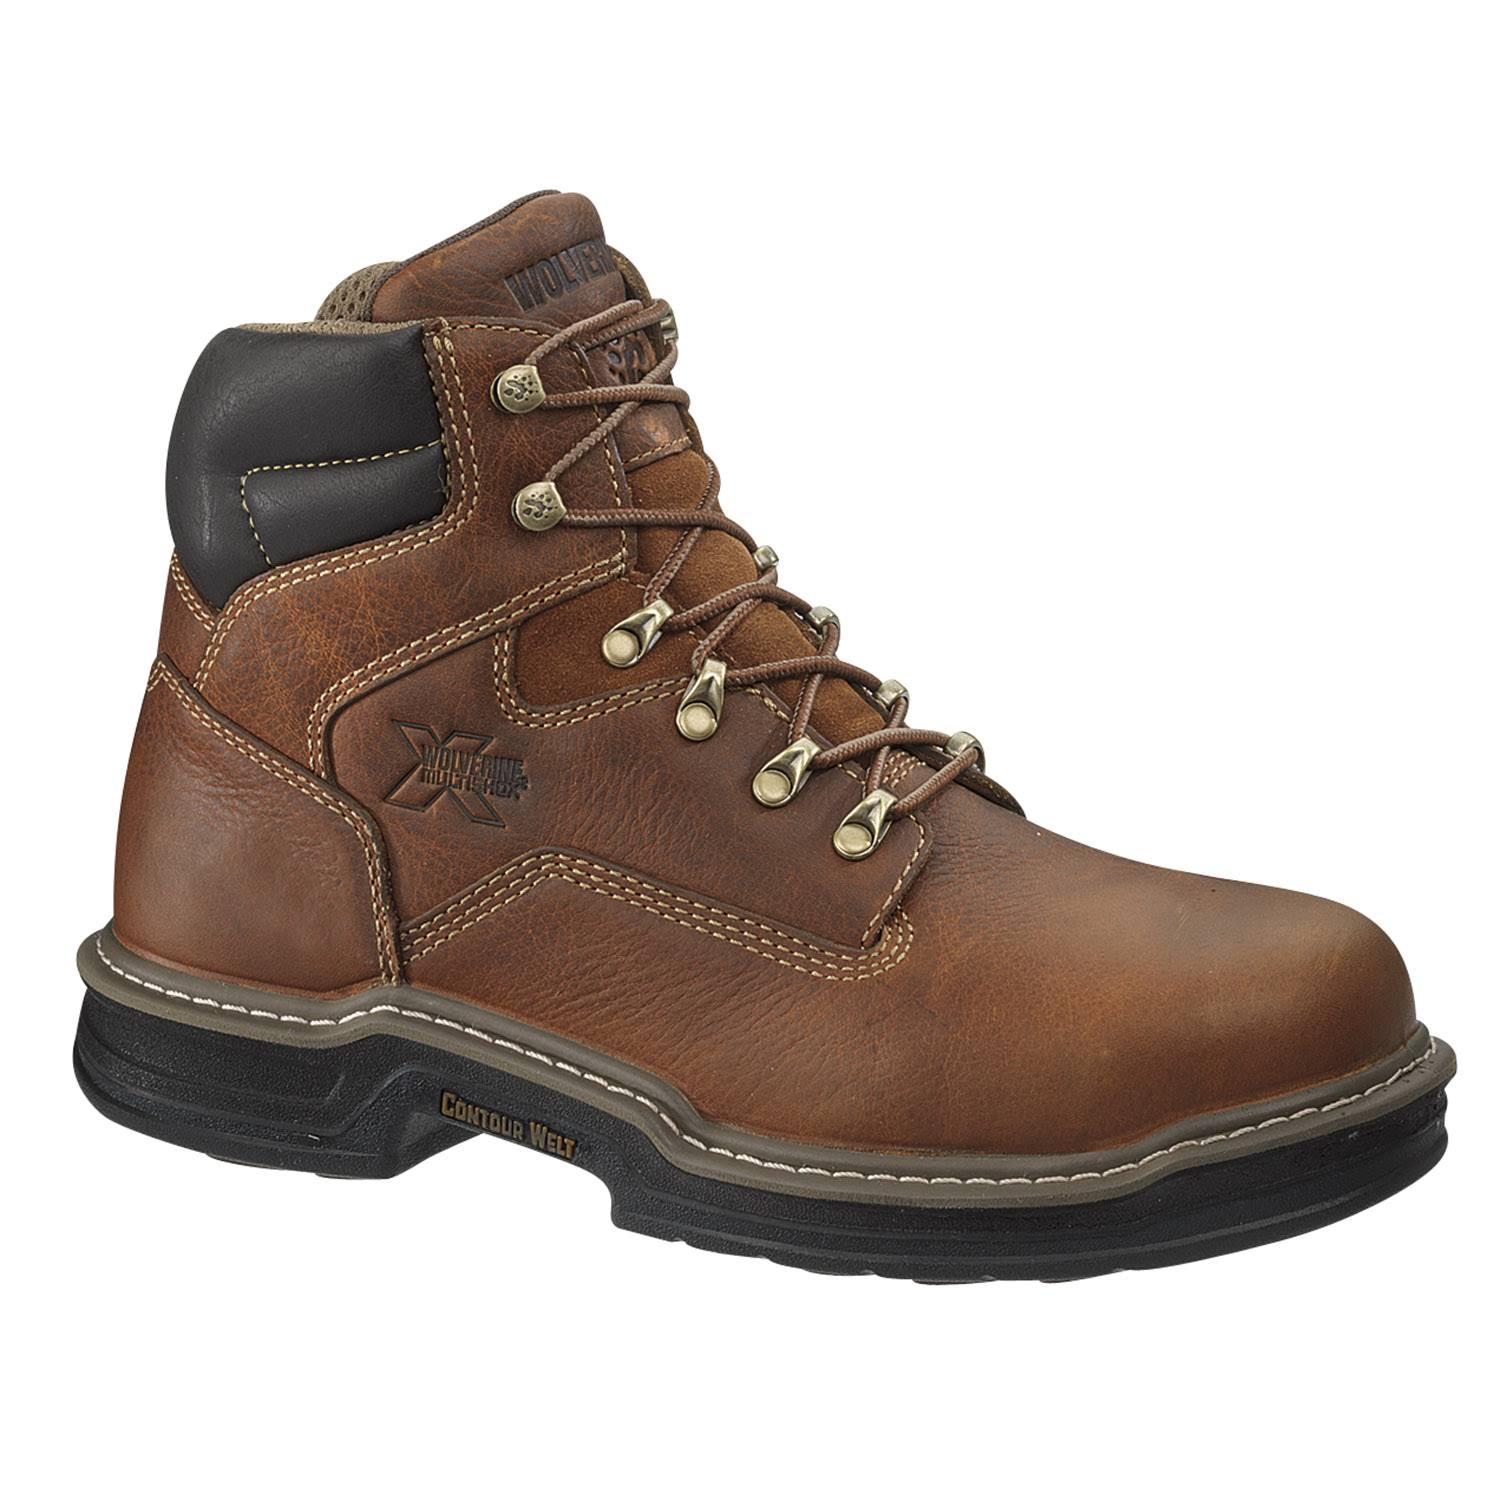 "Wolverine Men's Raider Steel-Toe Work Boots - Brown, 6"", 10 US"